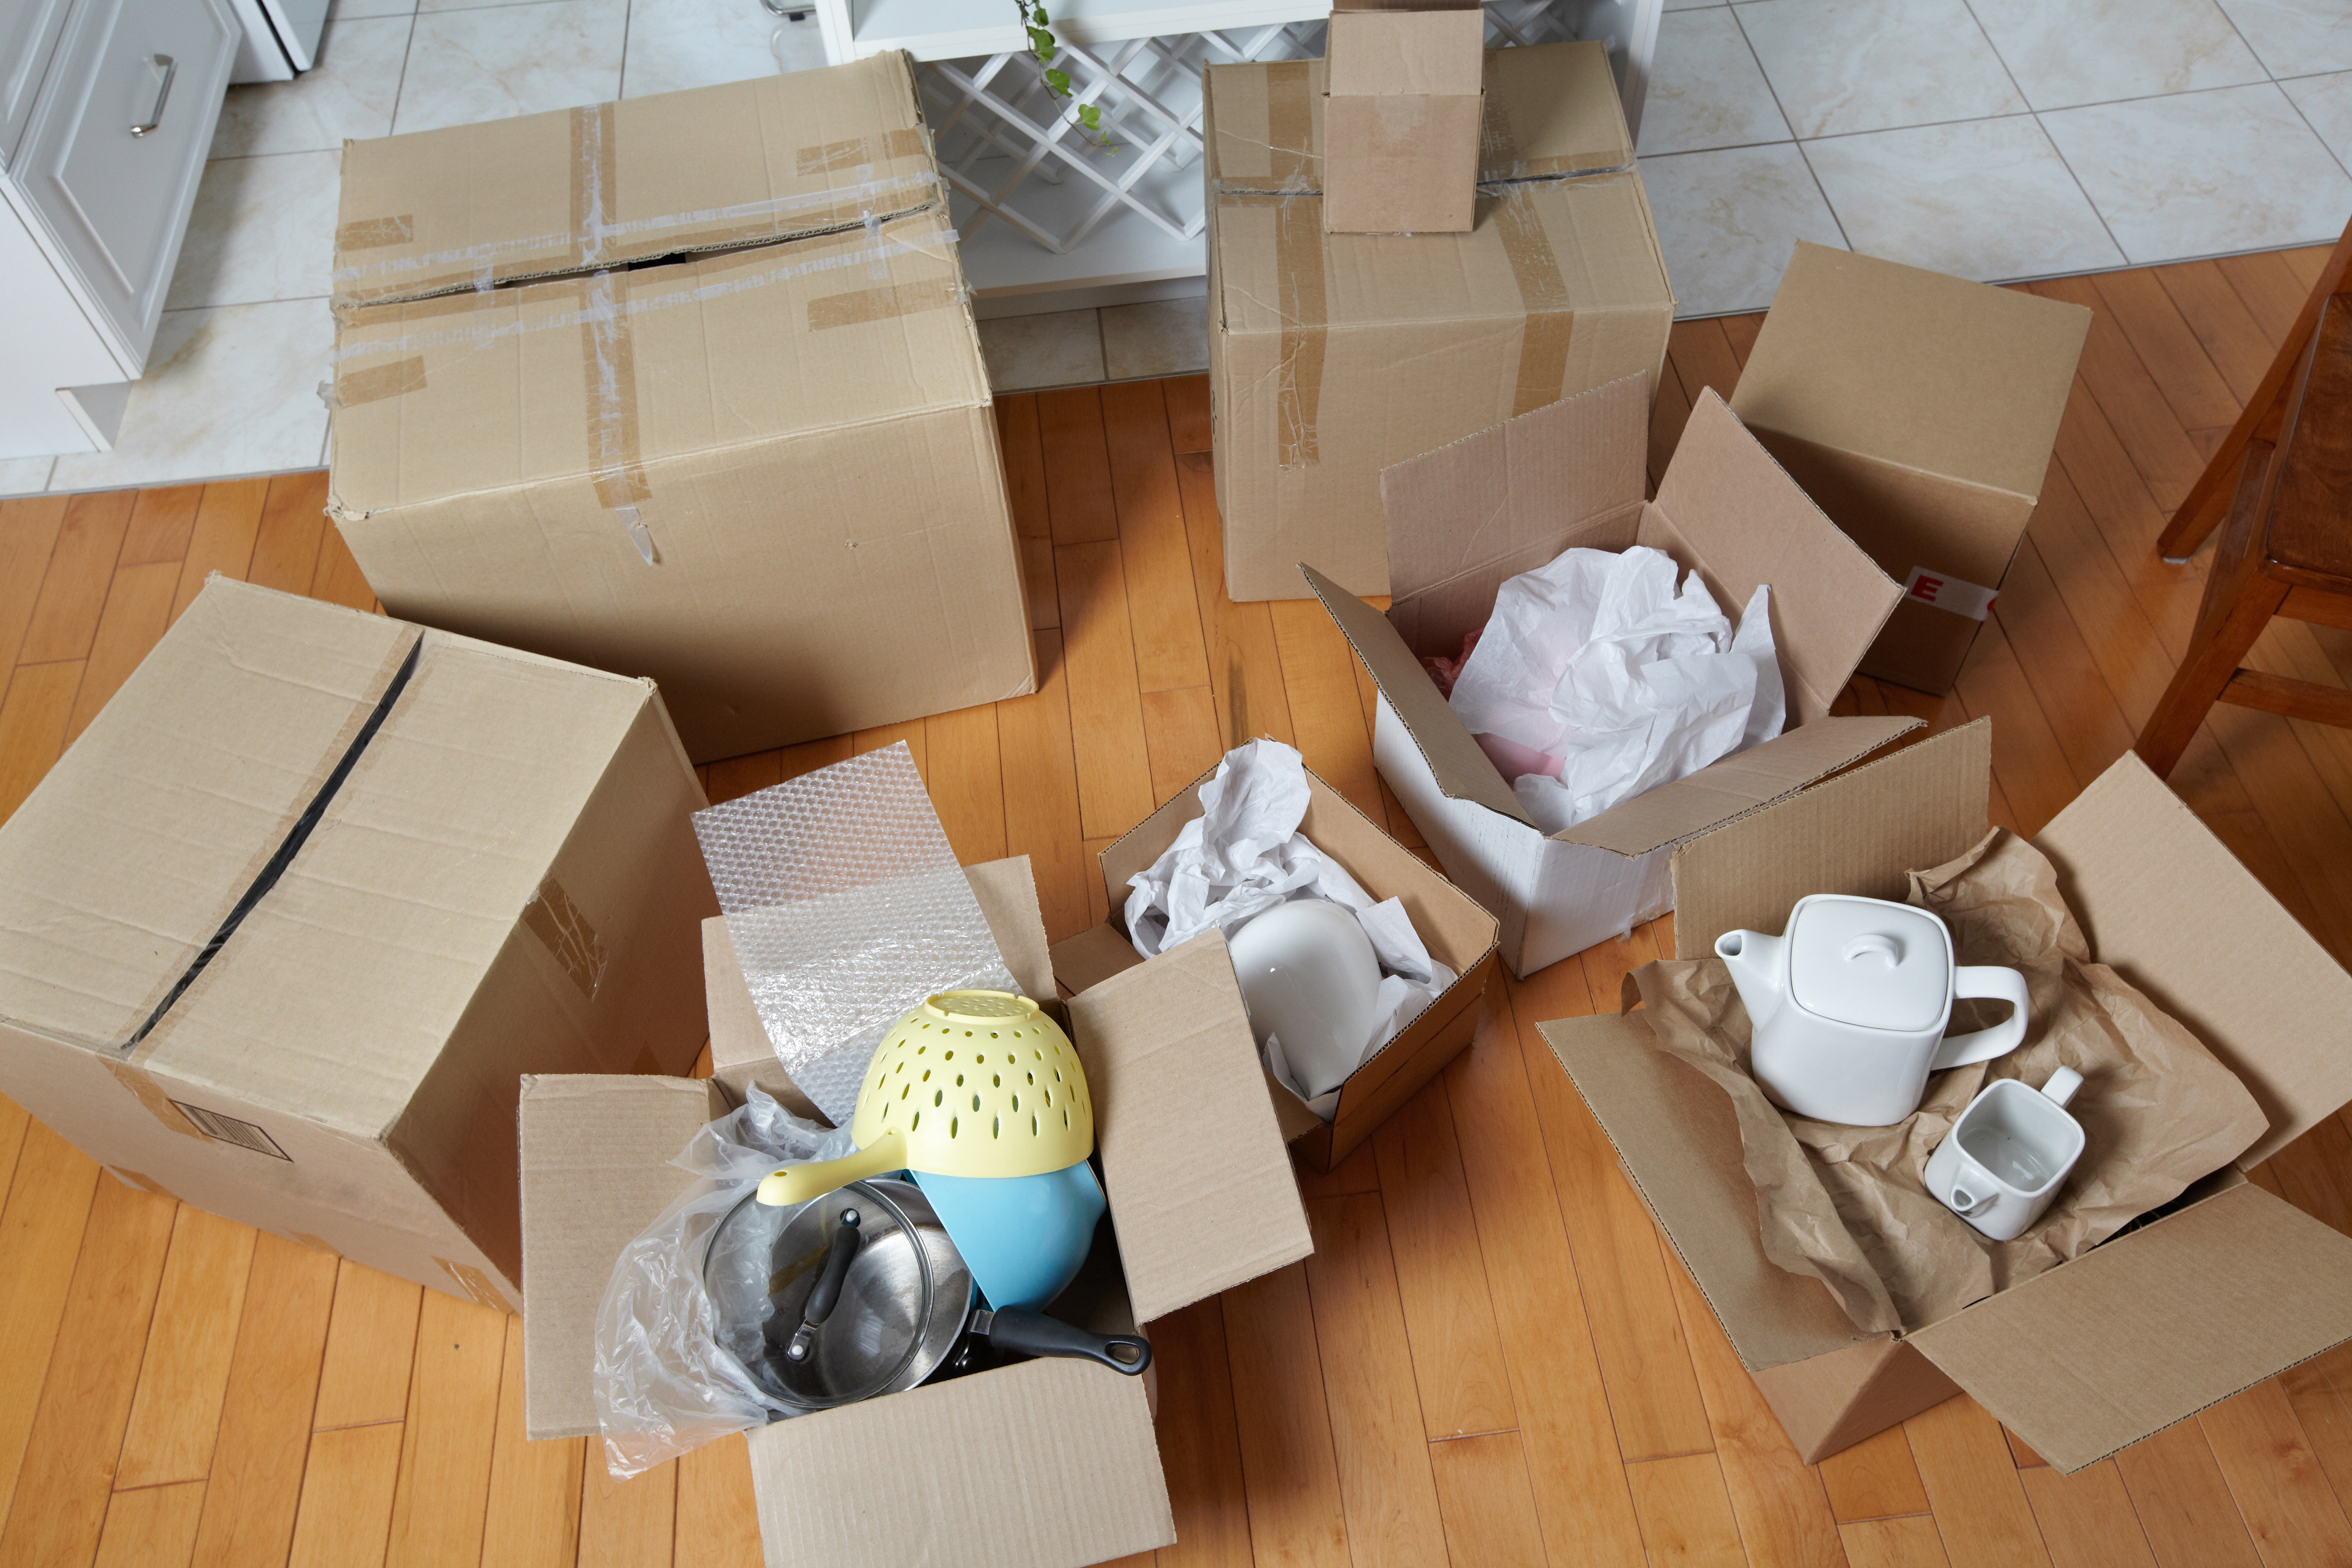 Assorted cardboard moving boxes on the floor with dishes and packing paper.